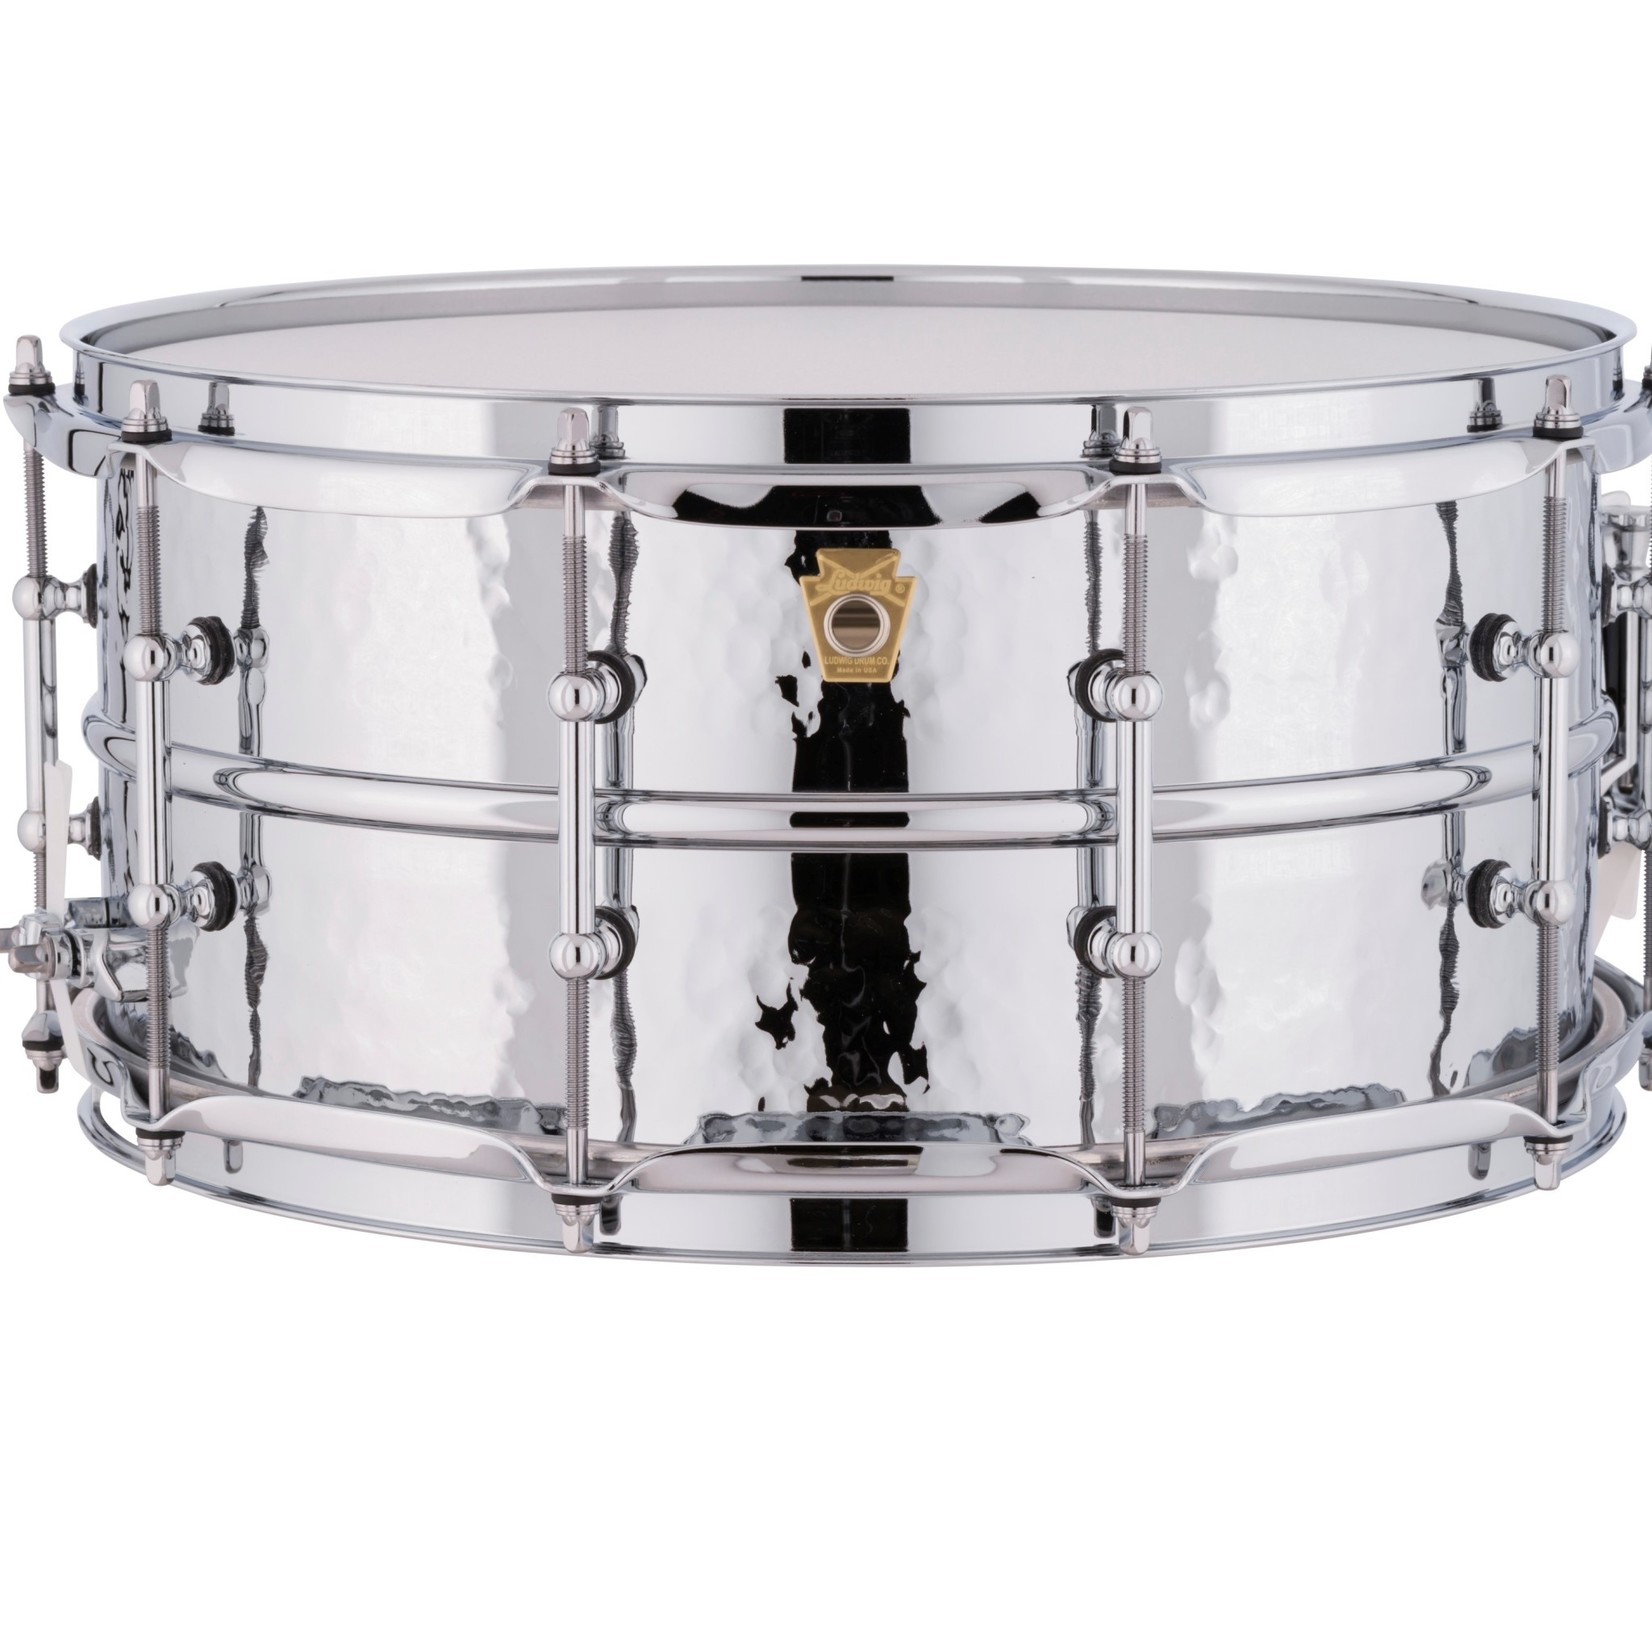 """Ludwig LUDWIG 6.5X14"""" HAMMERED SUPRAPHONIC SNARE DRUM W/ TUBE LUGS LM402KT"""